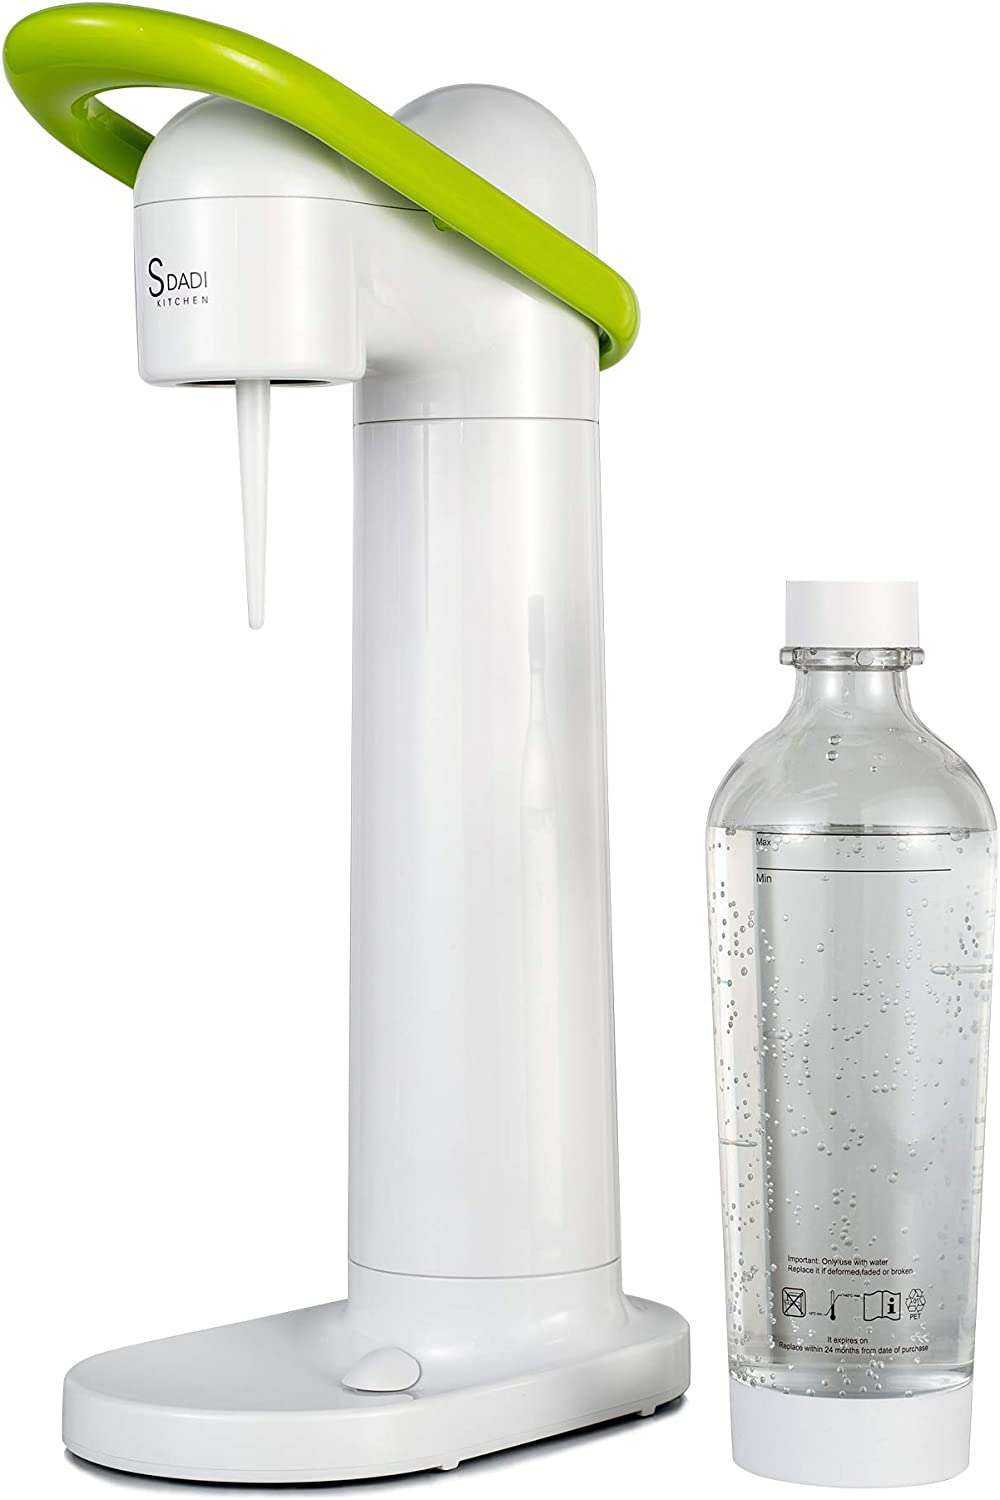 SDADI Sparkling Water and Soda Maker Seltzer Fizzy Drink Maker with 1L Re-usable BPA-free Carbonating Bottle(Without CO2 Cylinder) - White & Green